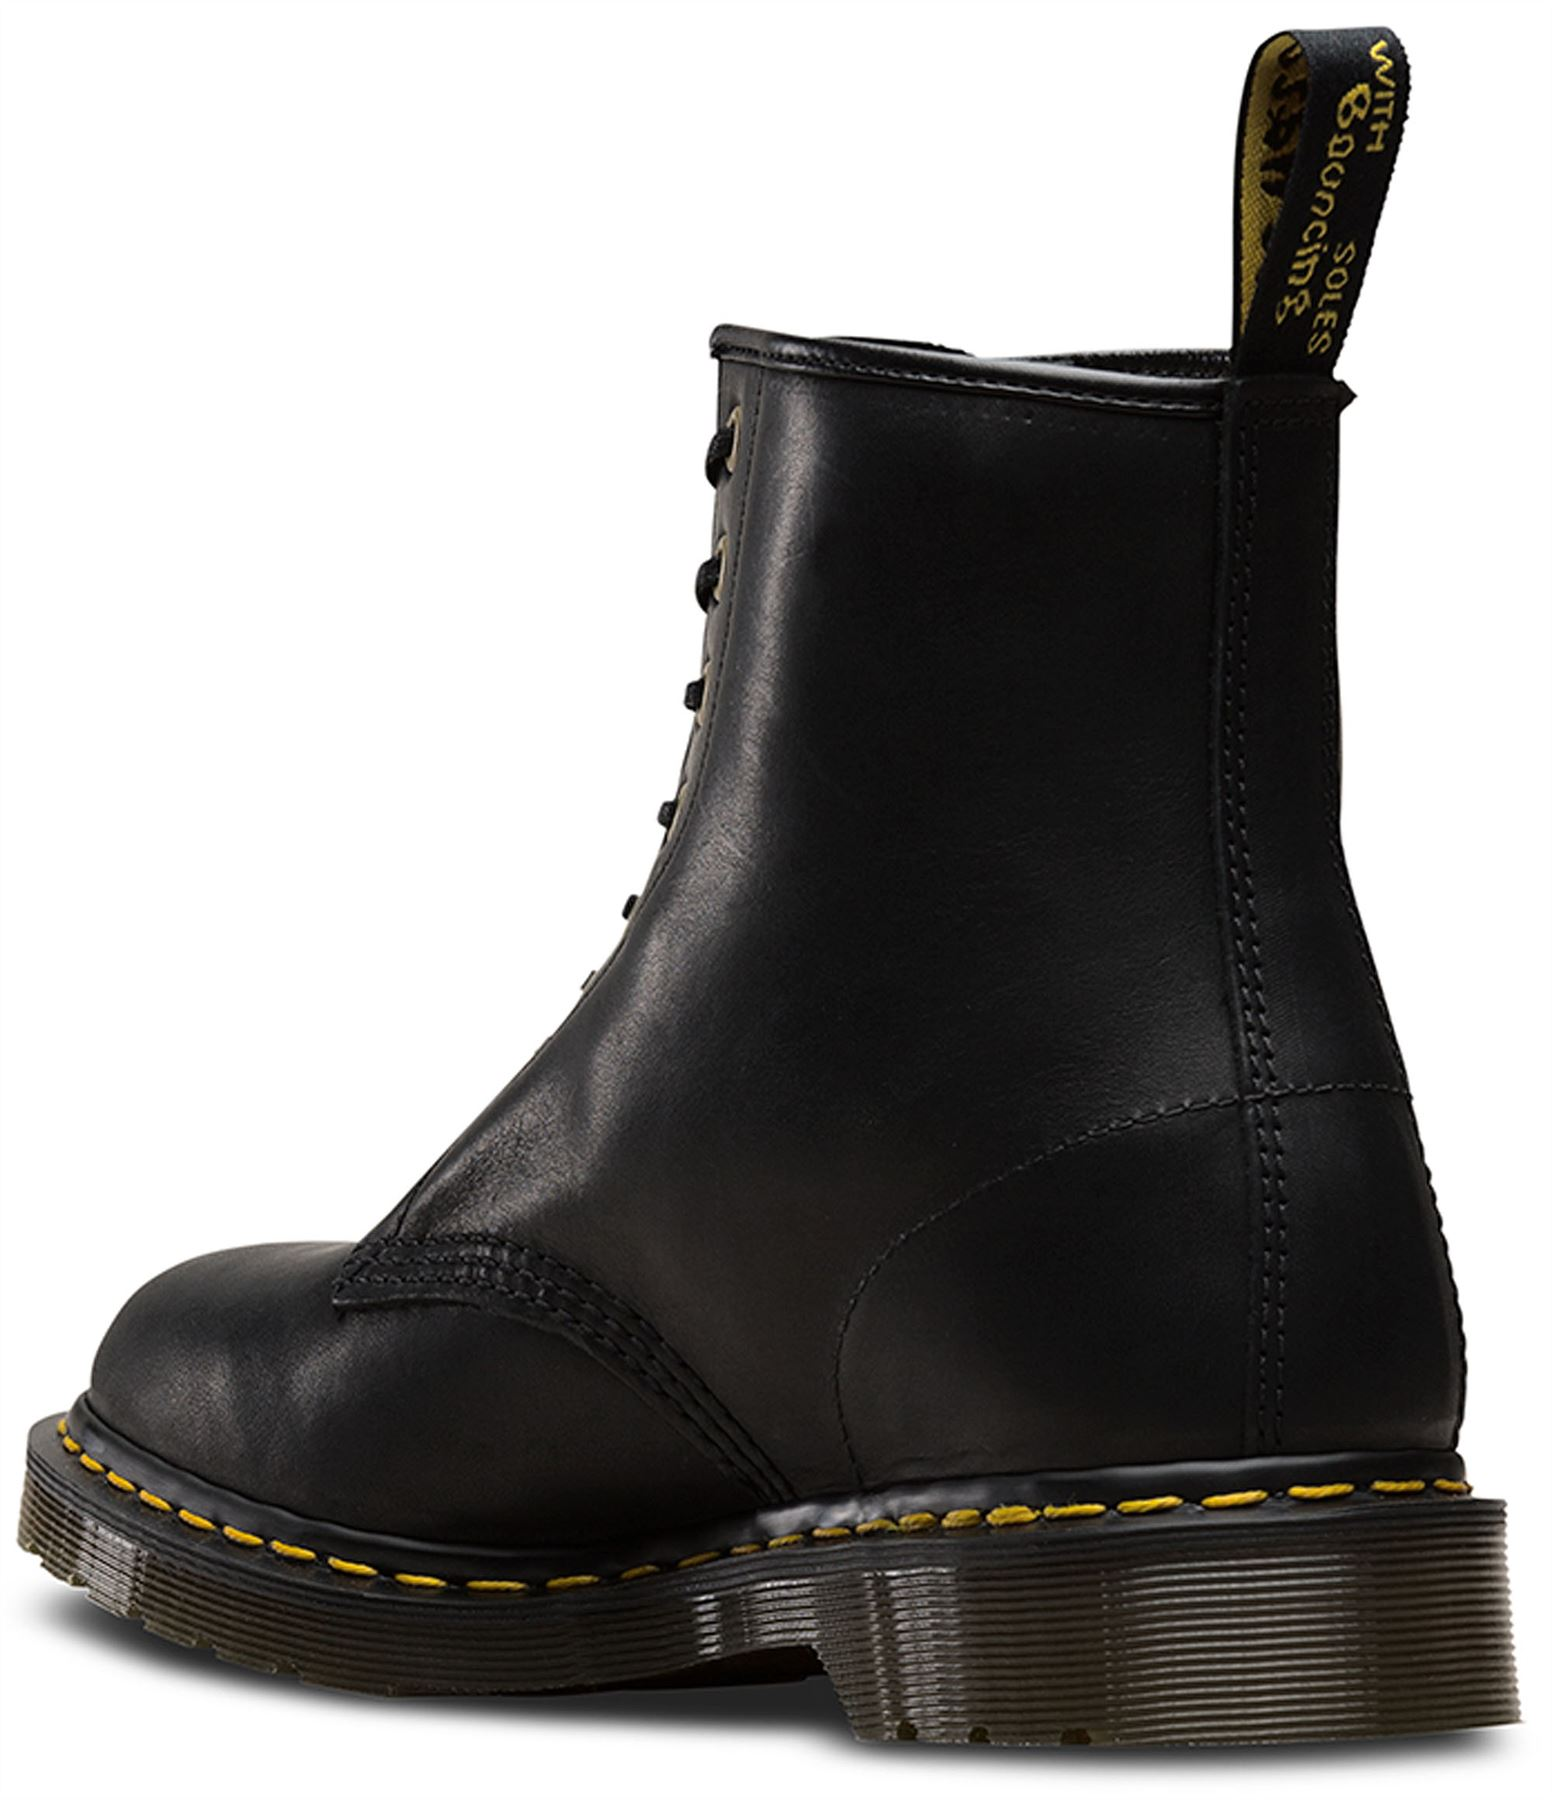 Dr Martens Made In England 1460 Black Dublin Horween Leather Ankle Boots